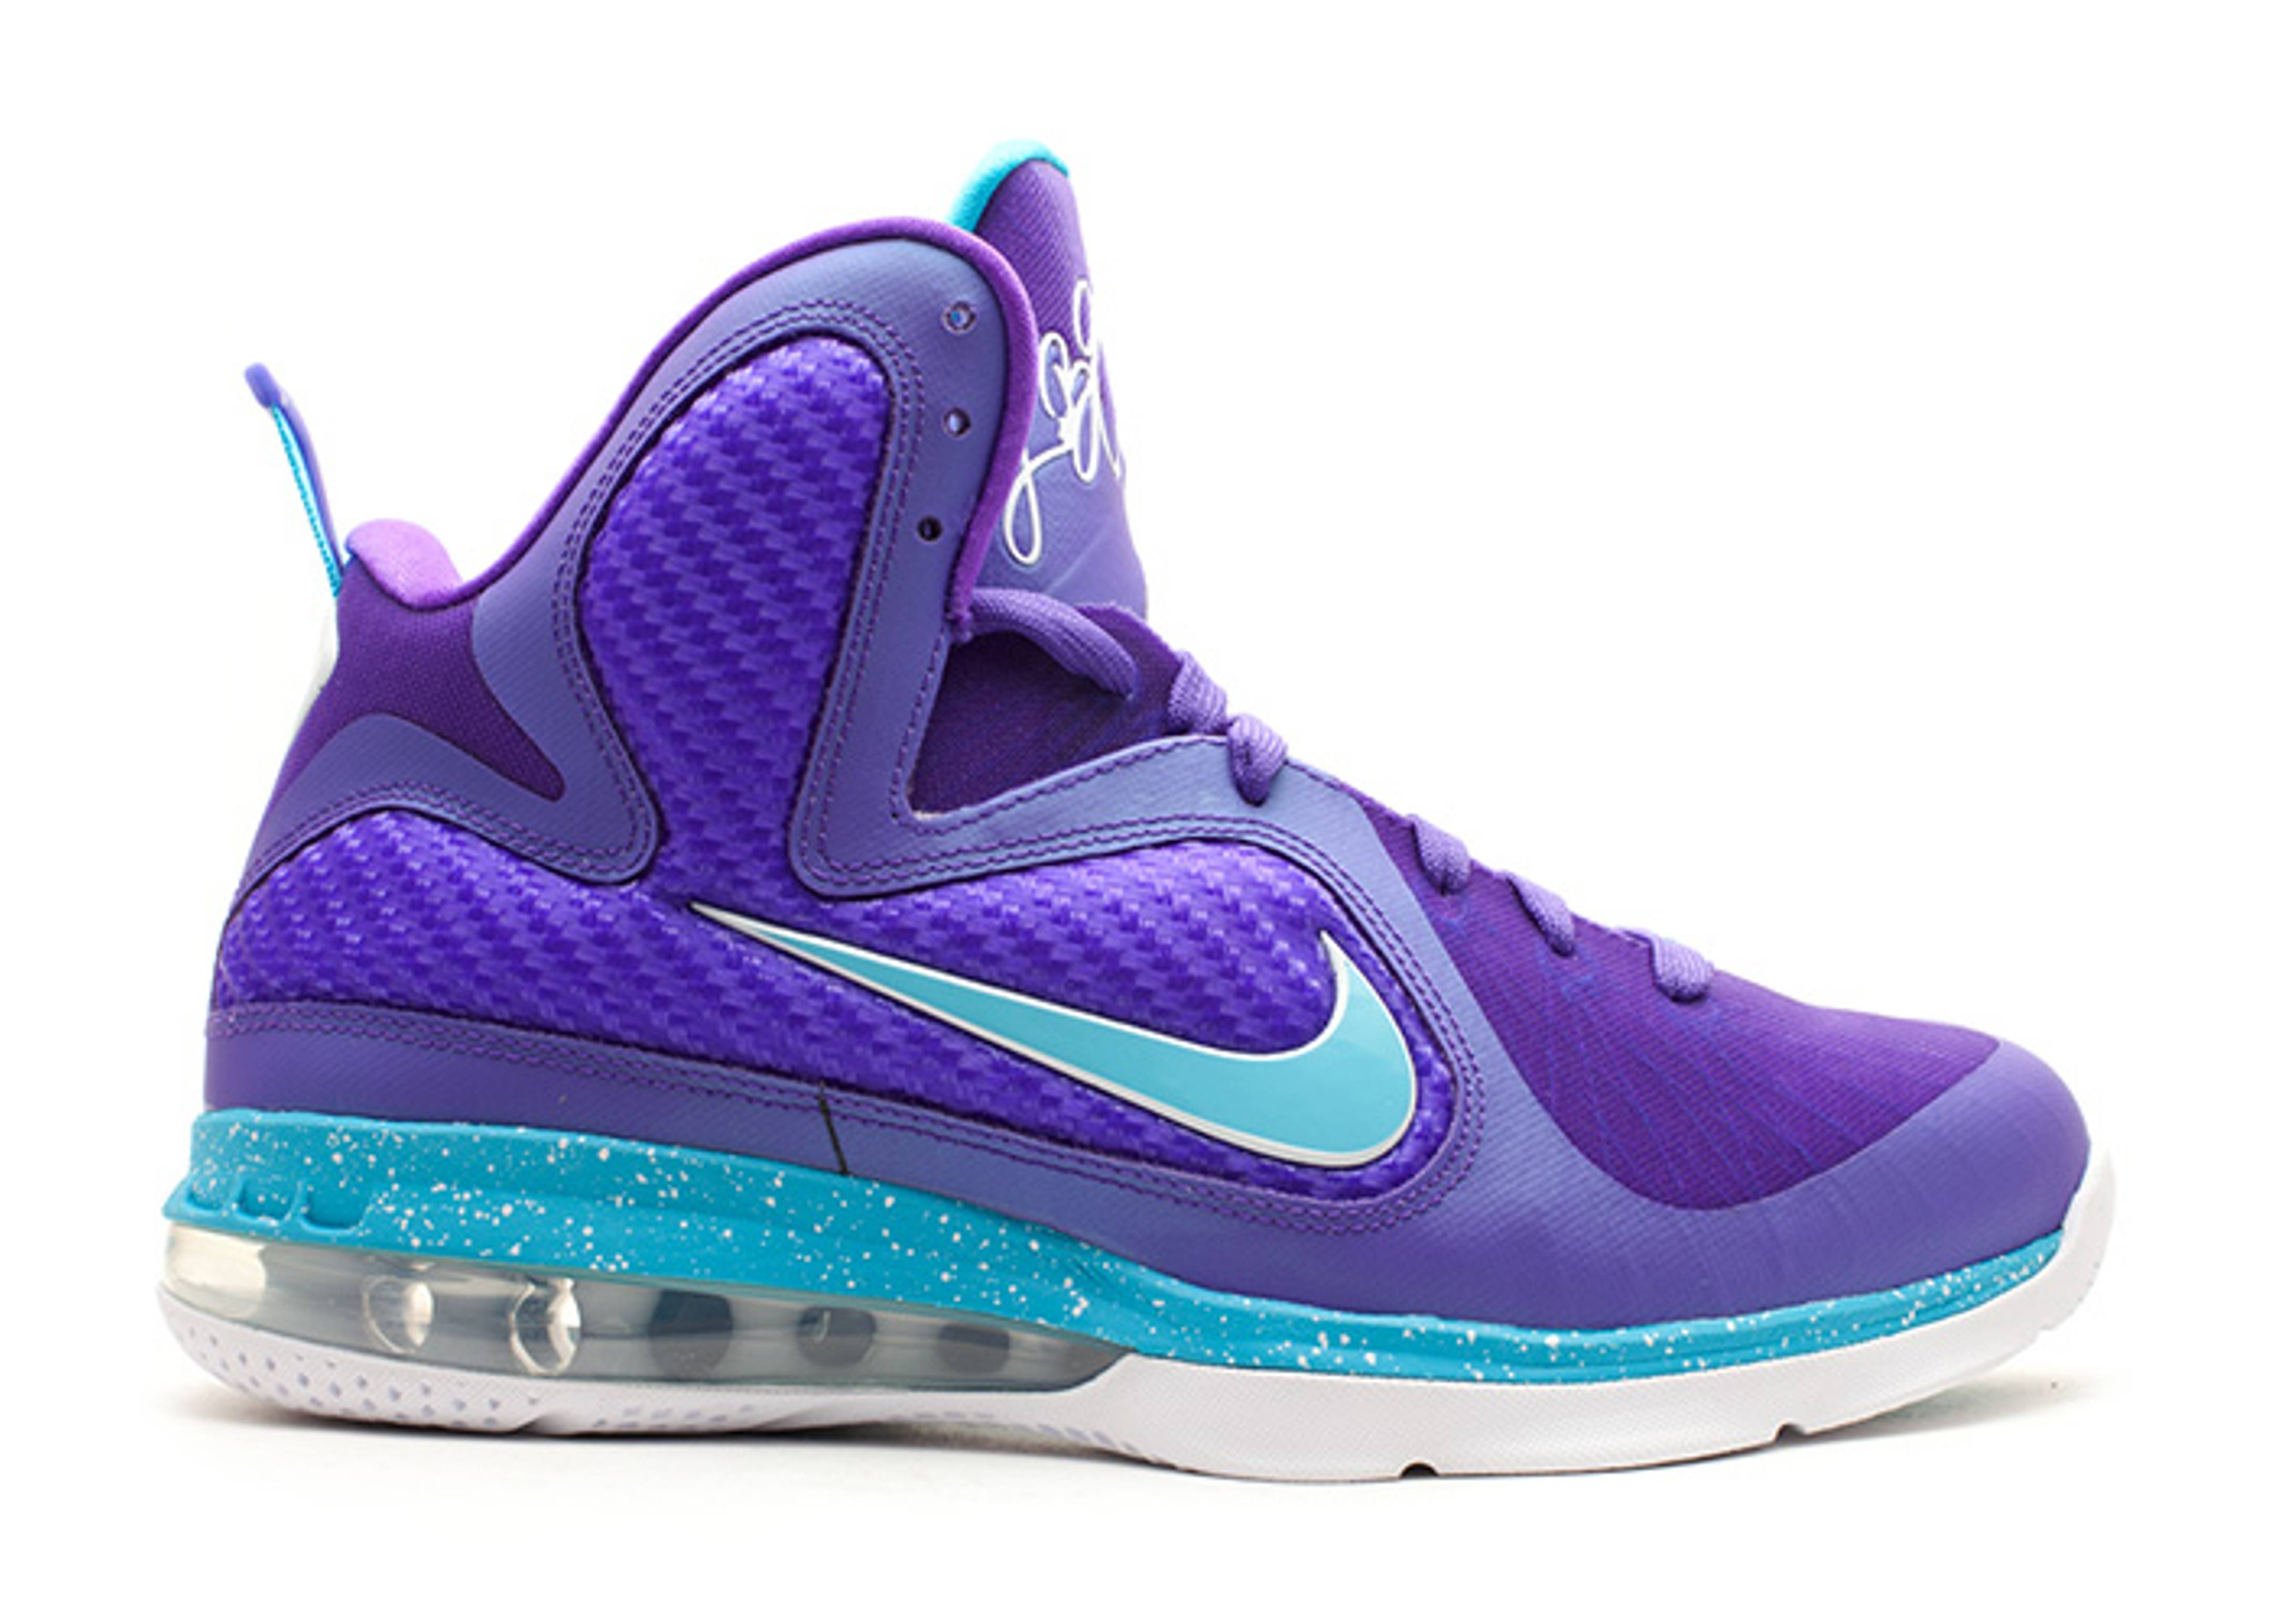 super popular 449a0 48d3c Lebron 9